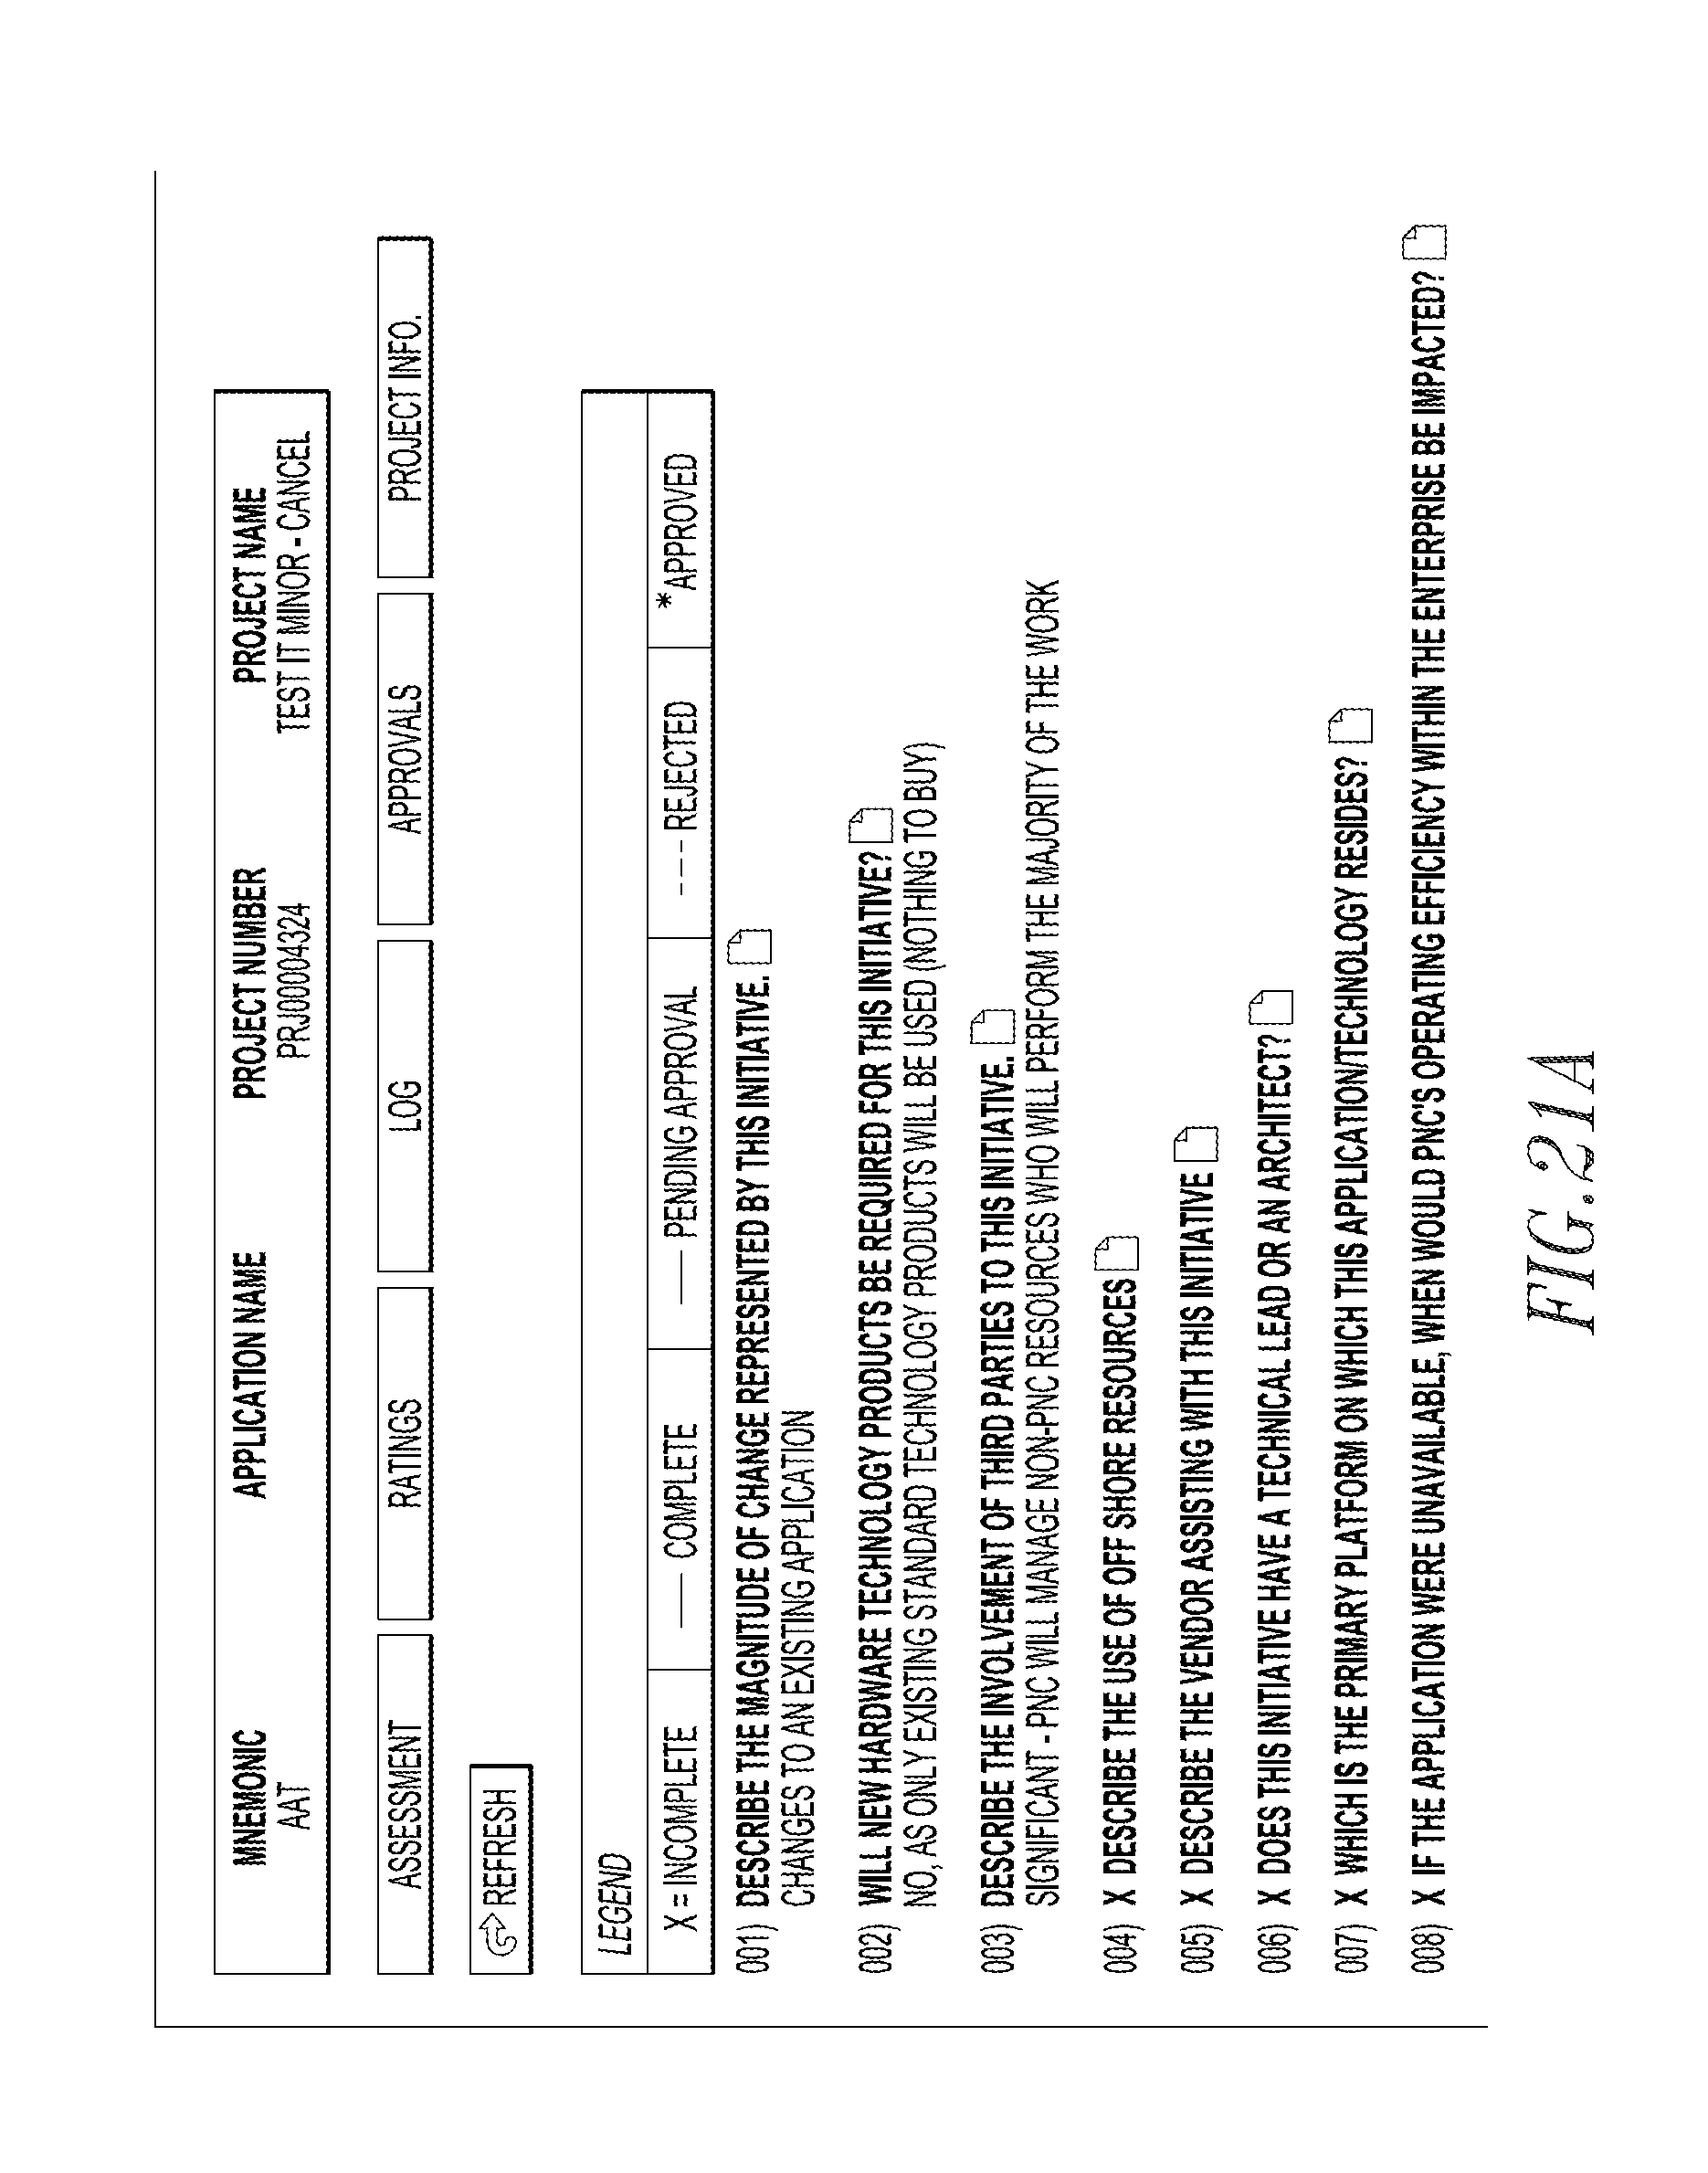 patente us assessment construction tool patentes patent drawing